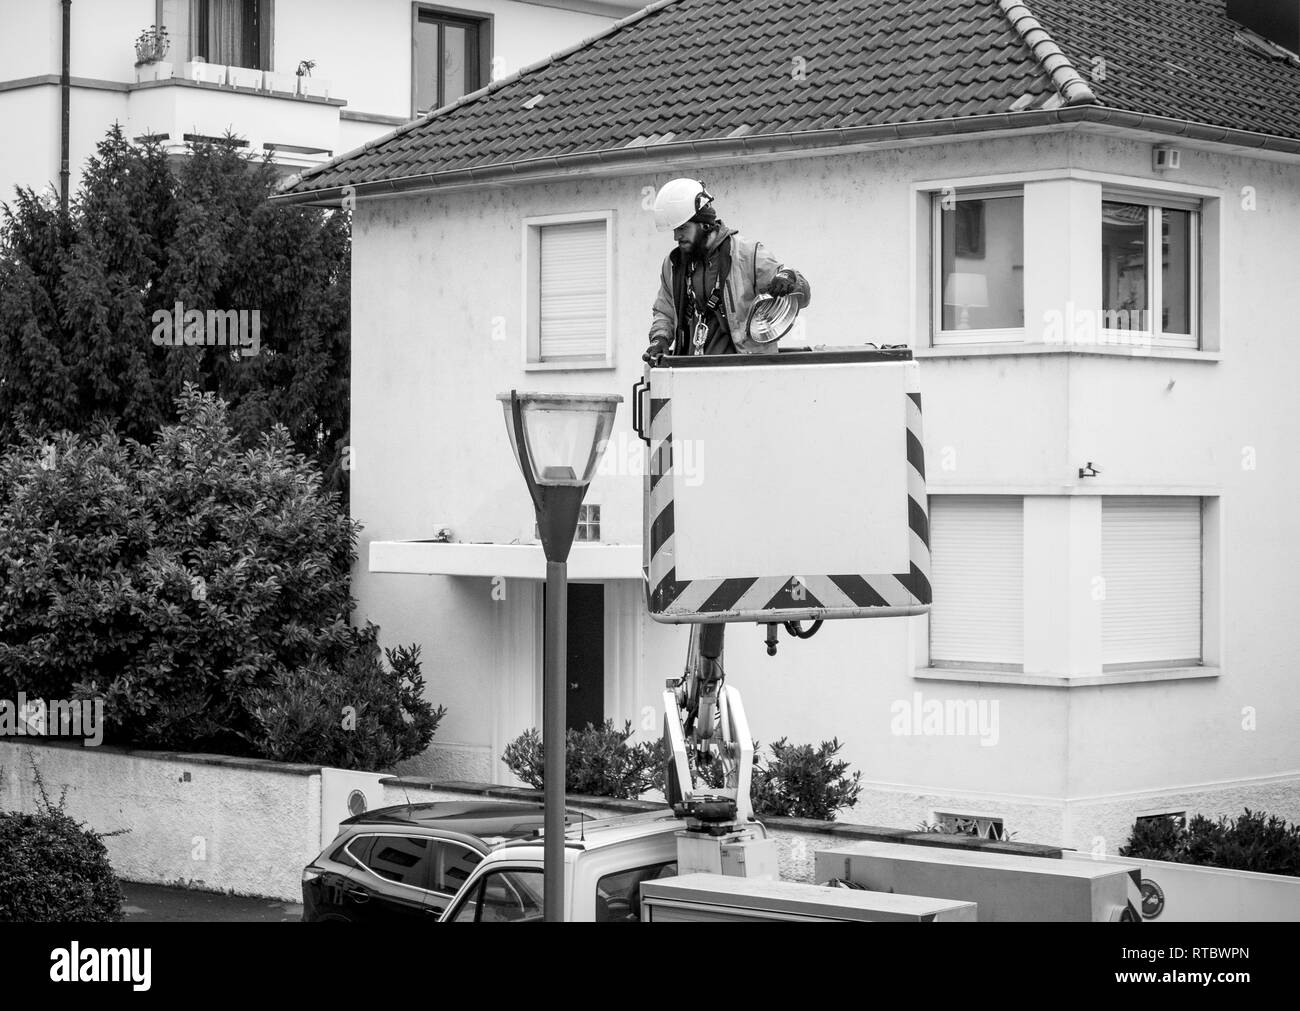 PARIS, FRANCE - DEC 16, 2017:  Worker cleaning repairing changing the light tube of a light mast in Paris for the night security and safety in the neighborhood - Stock Image